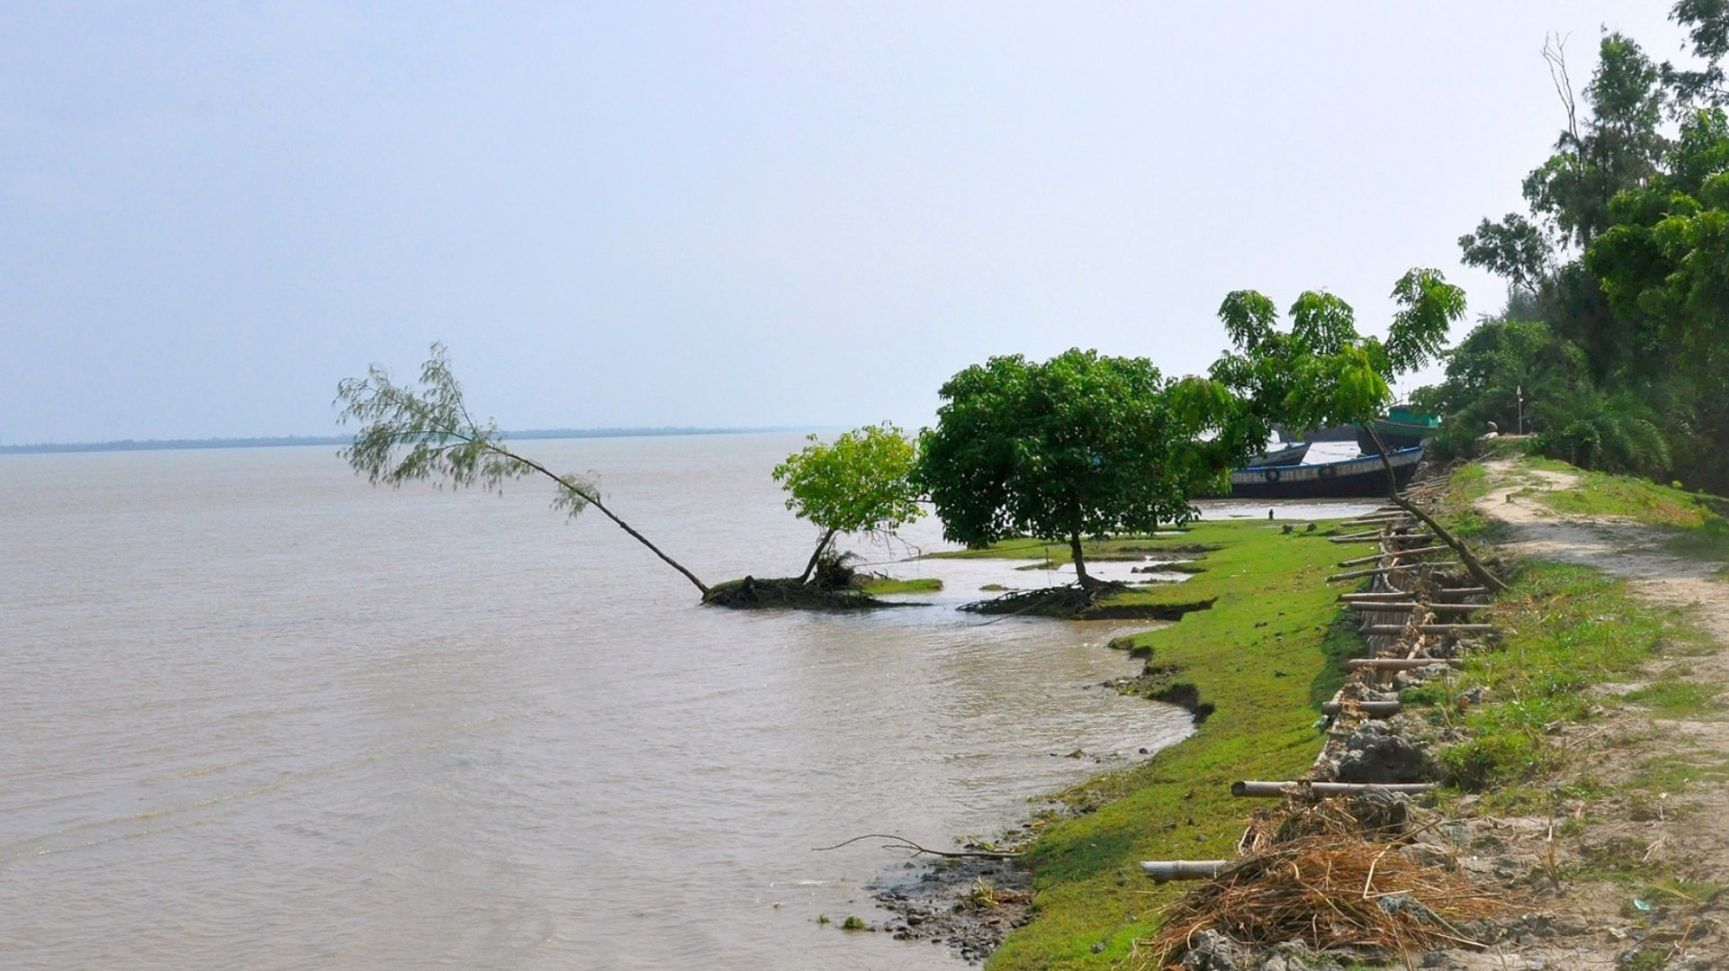 The landscape of Ghoramara island in the Sundarbans (Image: Anup Bhattacharya)